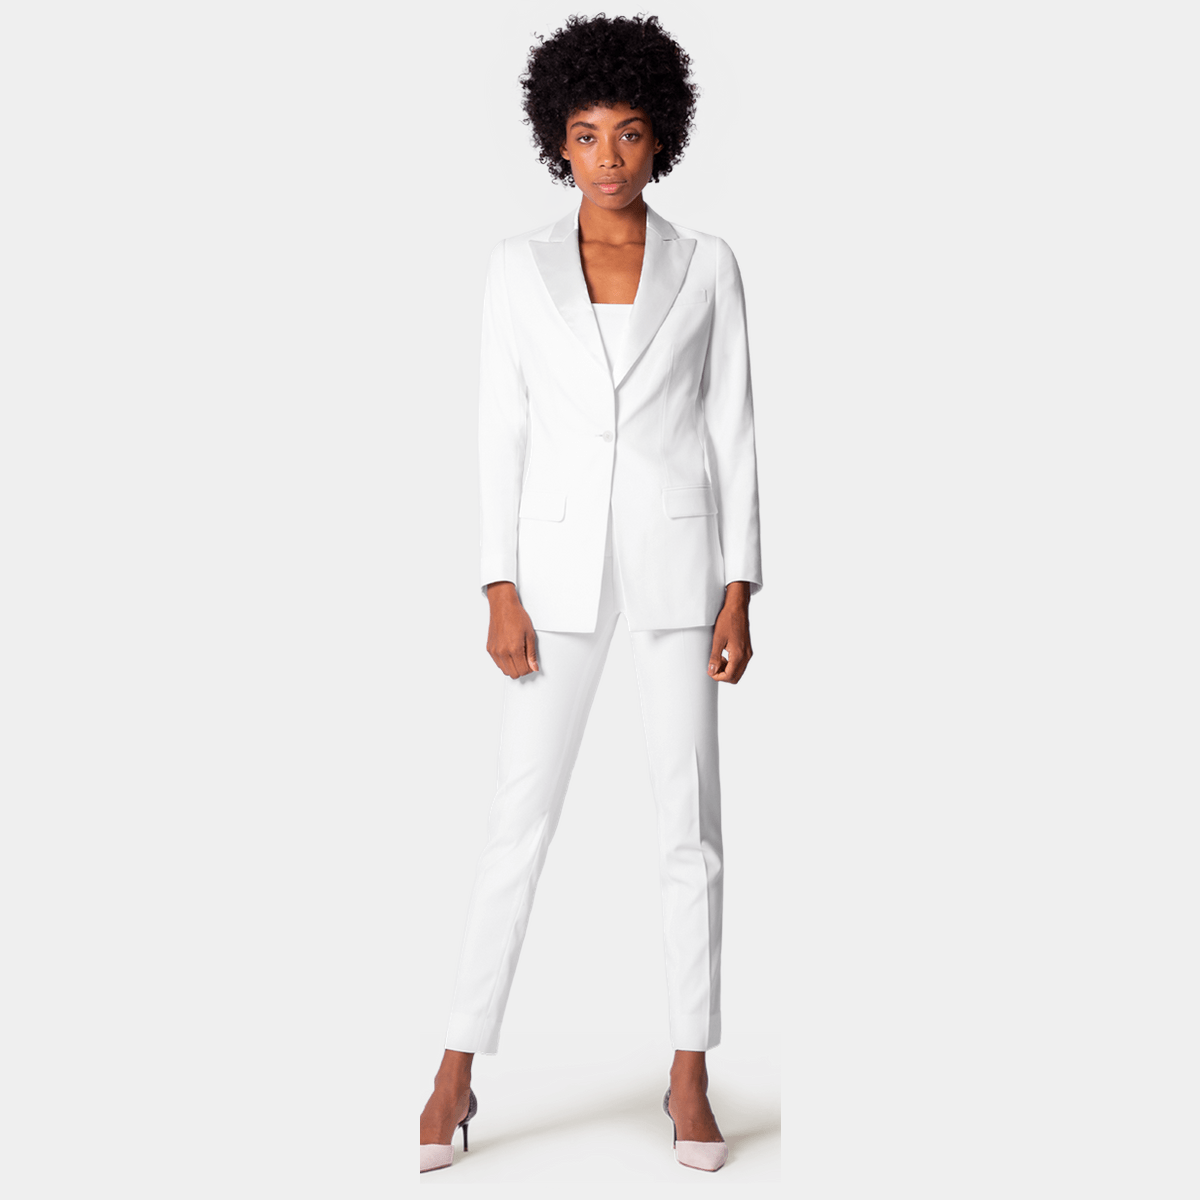 1dd5170c95d39 Women's White Suits - Made to Measure - Sumissura